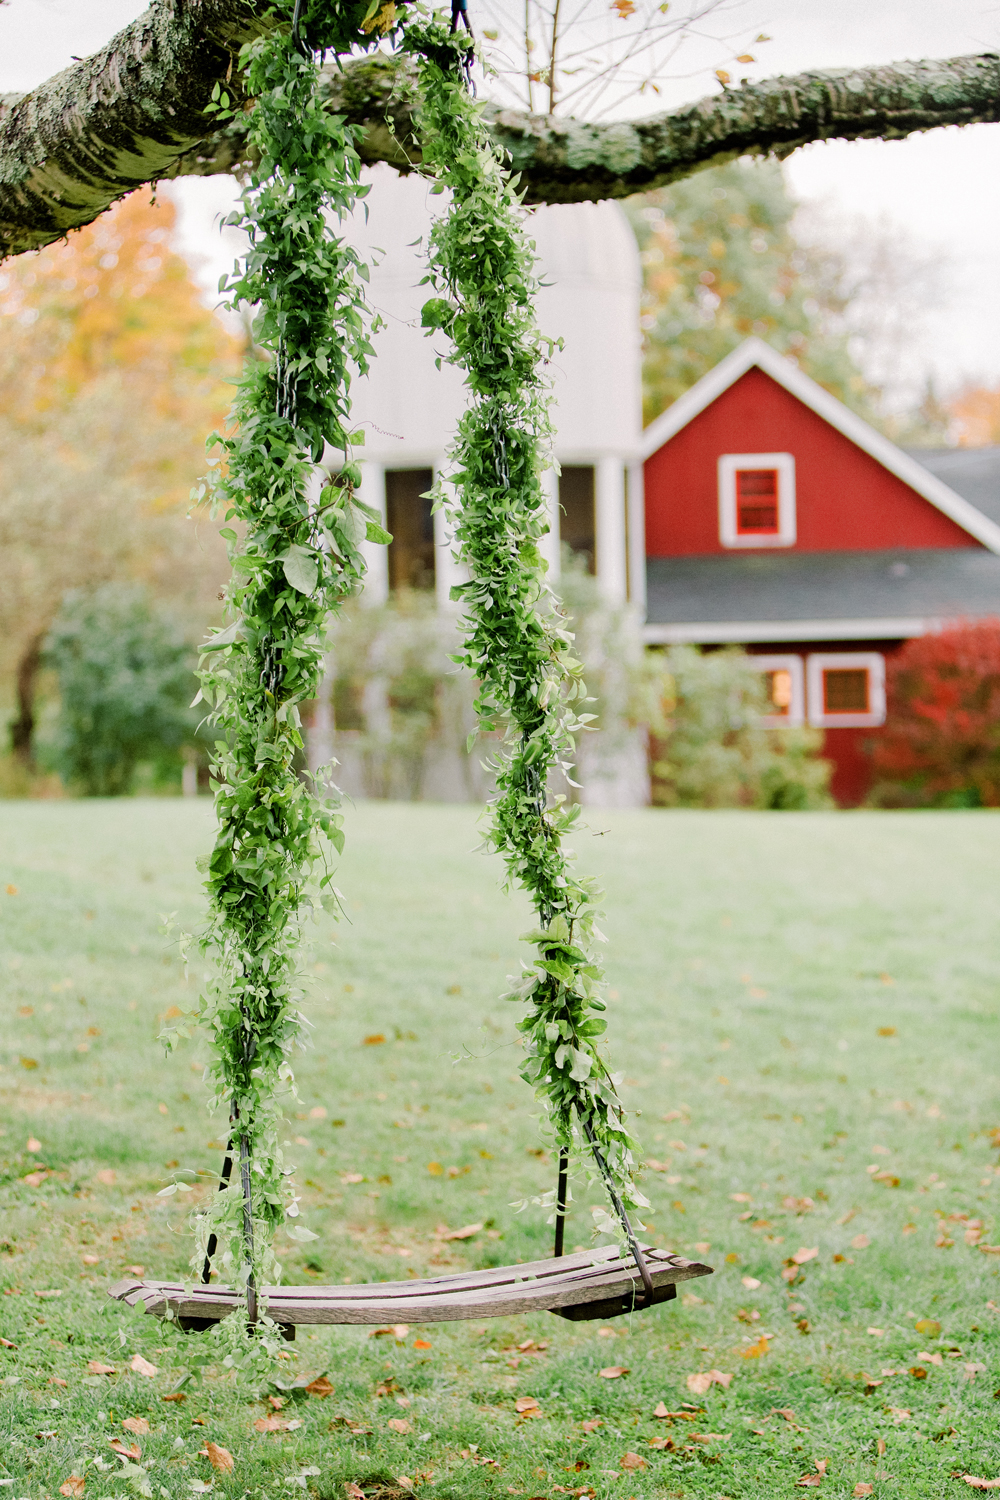 greenery covered hanging swing